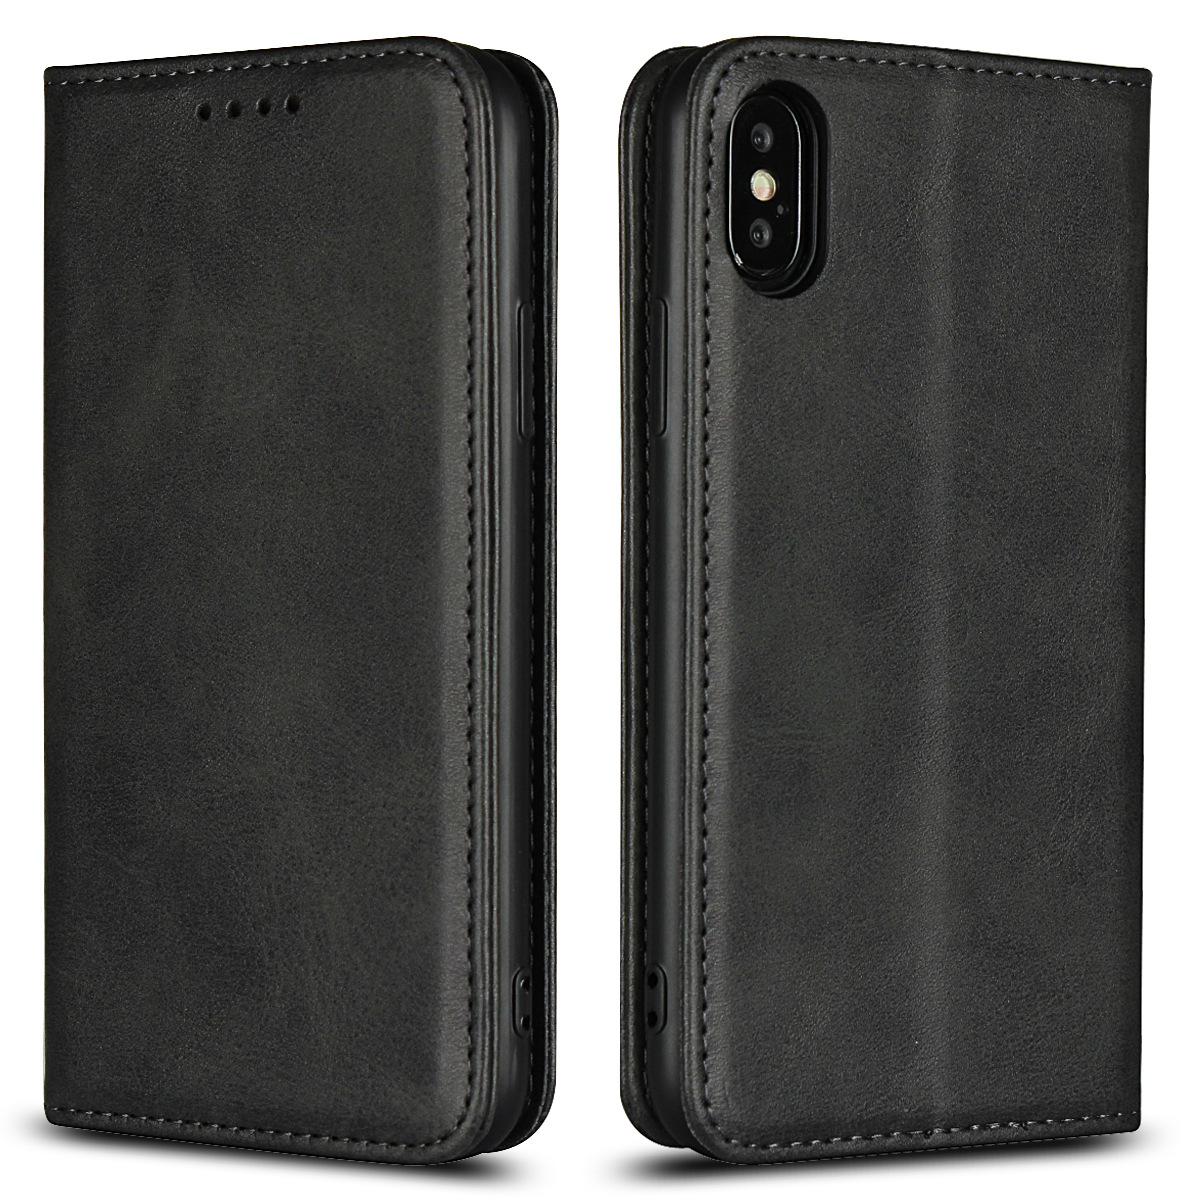 Magnet Calf Leather Phone Case For Iphone X XS Max XR 11 Pro Max Wallet Bag Card Slot Stand Flip Cover For Iphone 6 6S 7 8 Plus